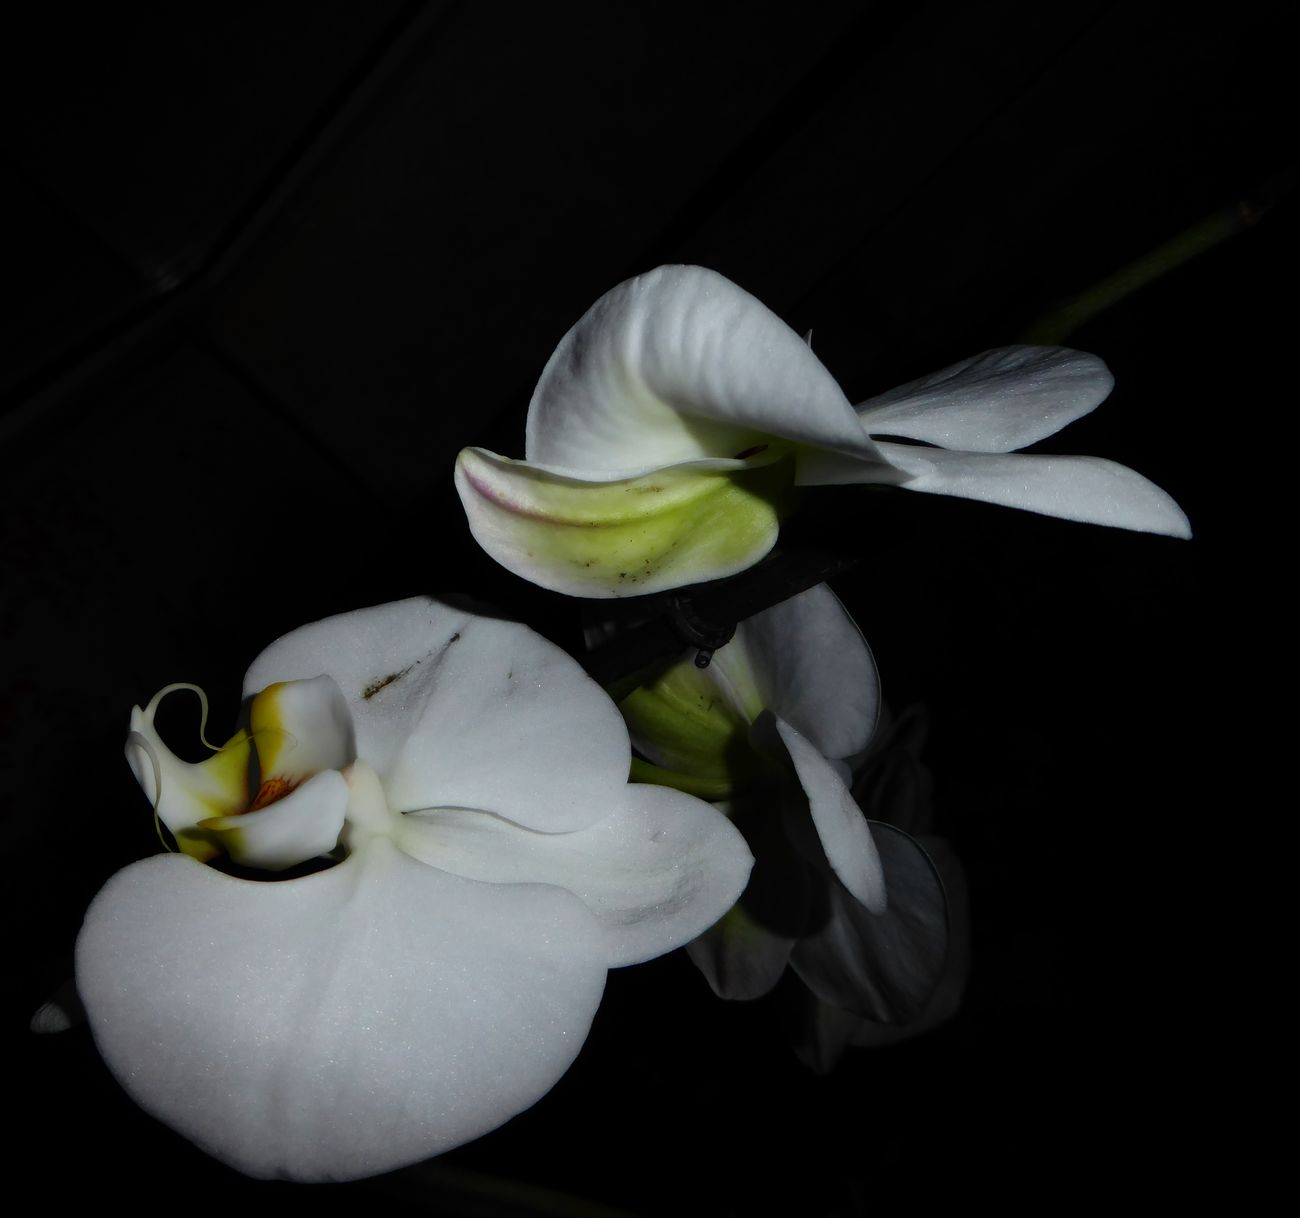 Orchideen Orchid Blossoms Orchid Flower Orchids Unusual View Black Background Close-up Tranquillity Night Shot Nightphtography Contrast In Nature Beauty In December😍 Enjoing Life Simple Beauty Colors Are My Life😍 For My Friends 😍😘🎁